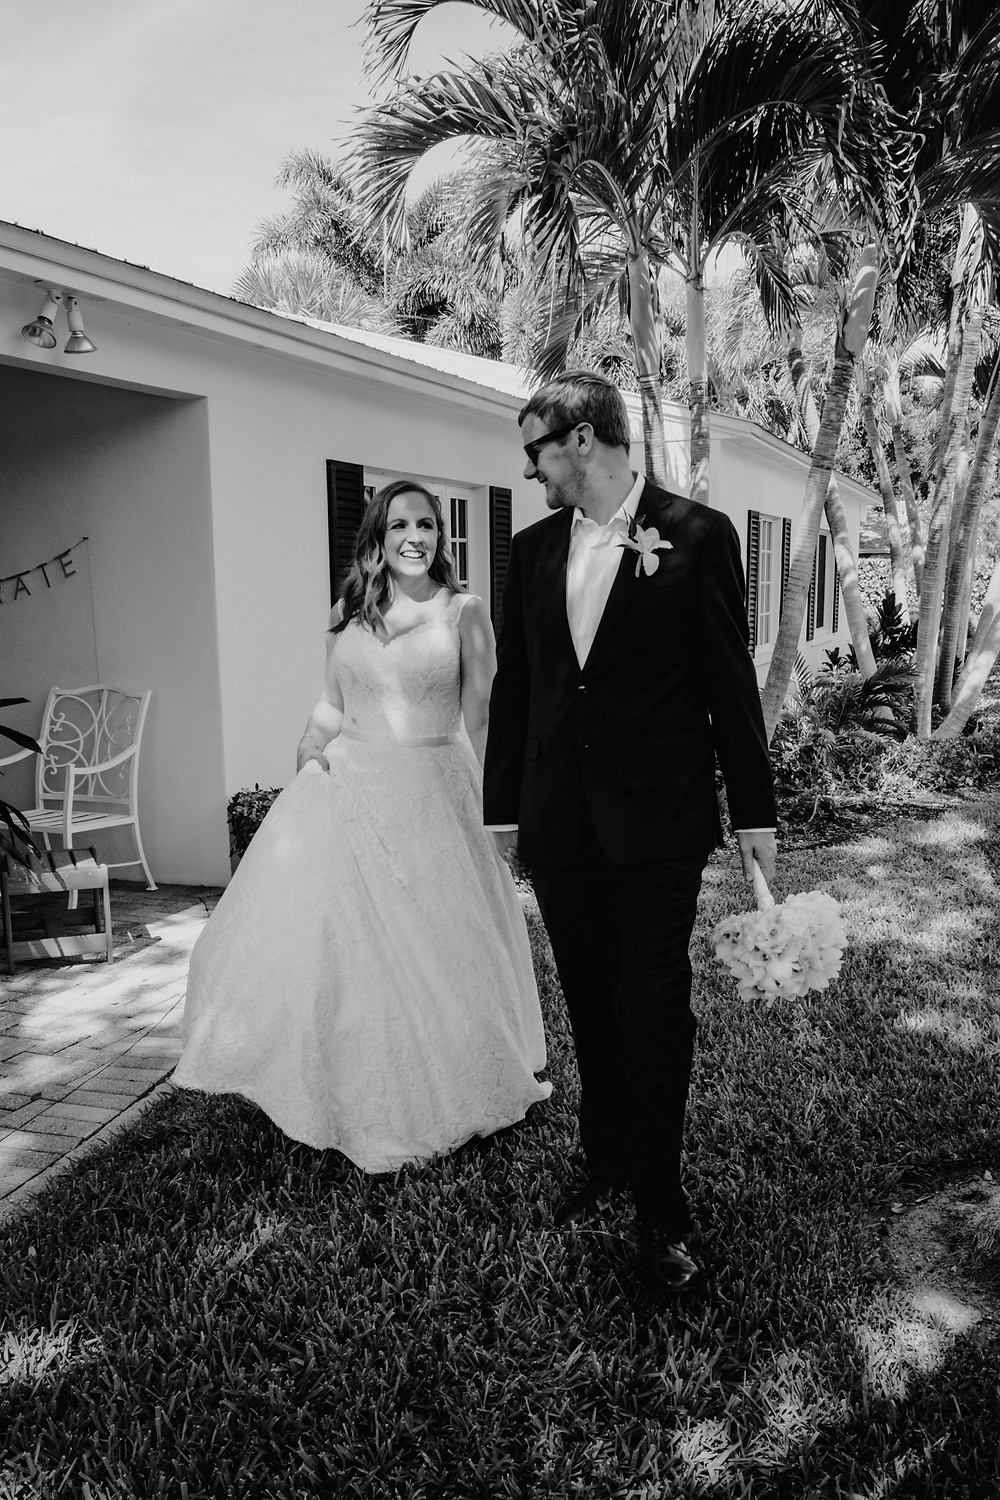 Smiling couple in black and white at wedding